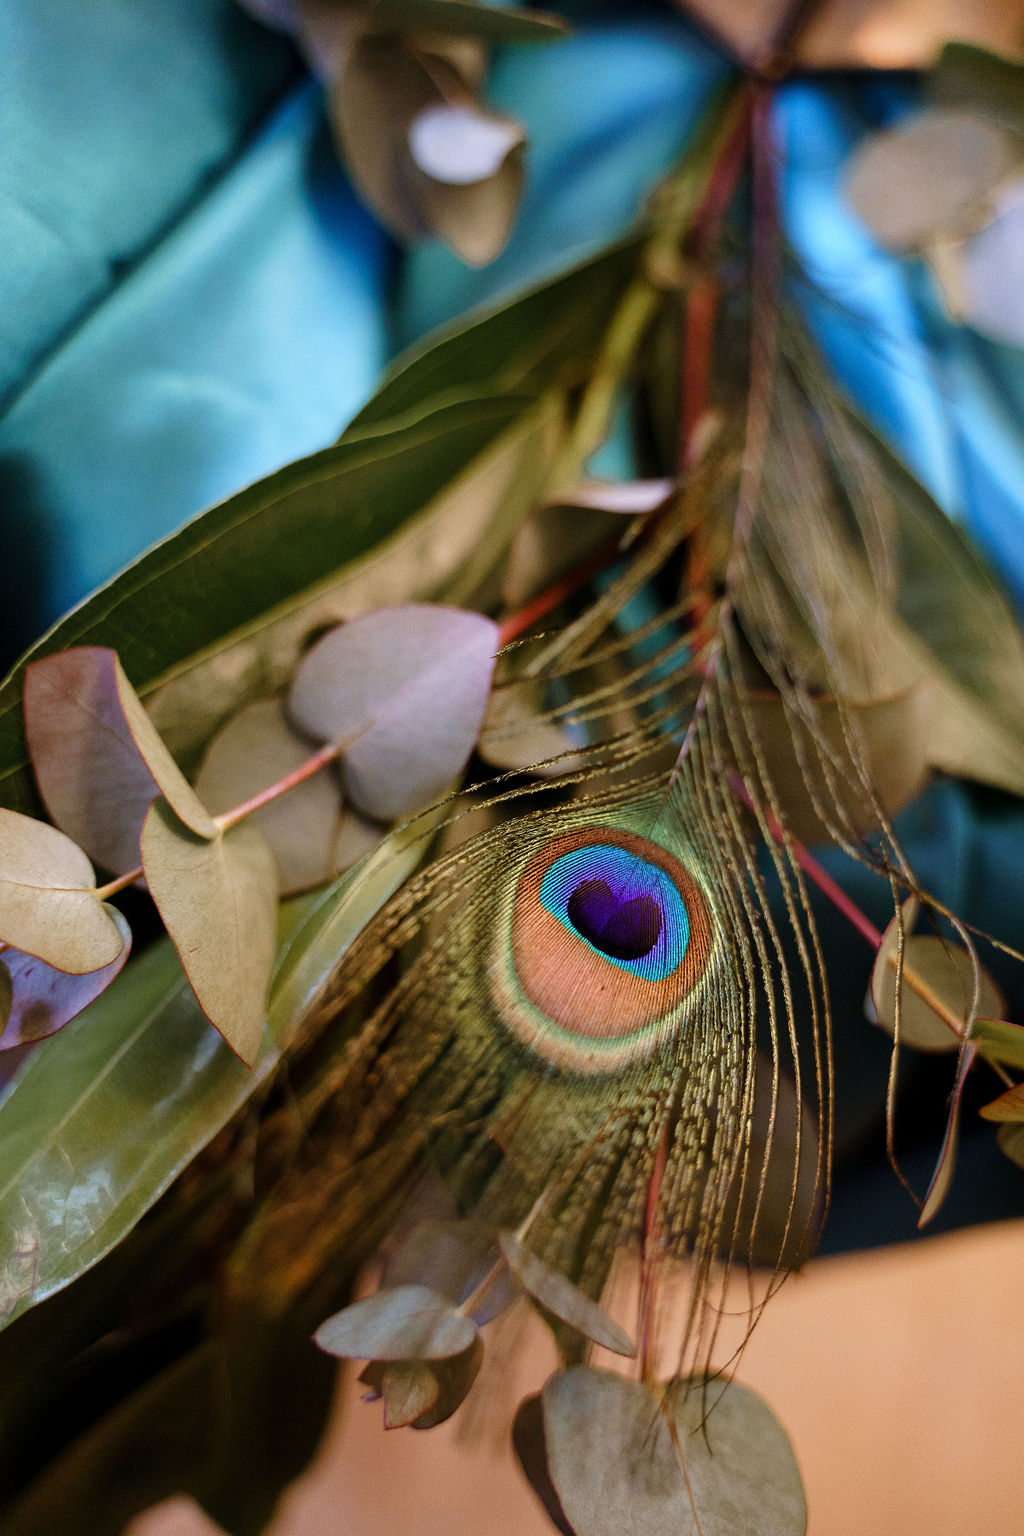 peacock themed wedding - peacock wedding - unique wedding colour scheme - quirky wedding - luxurious wedding - peacock feather wedding